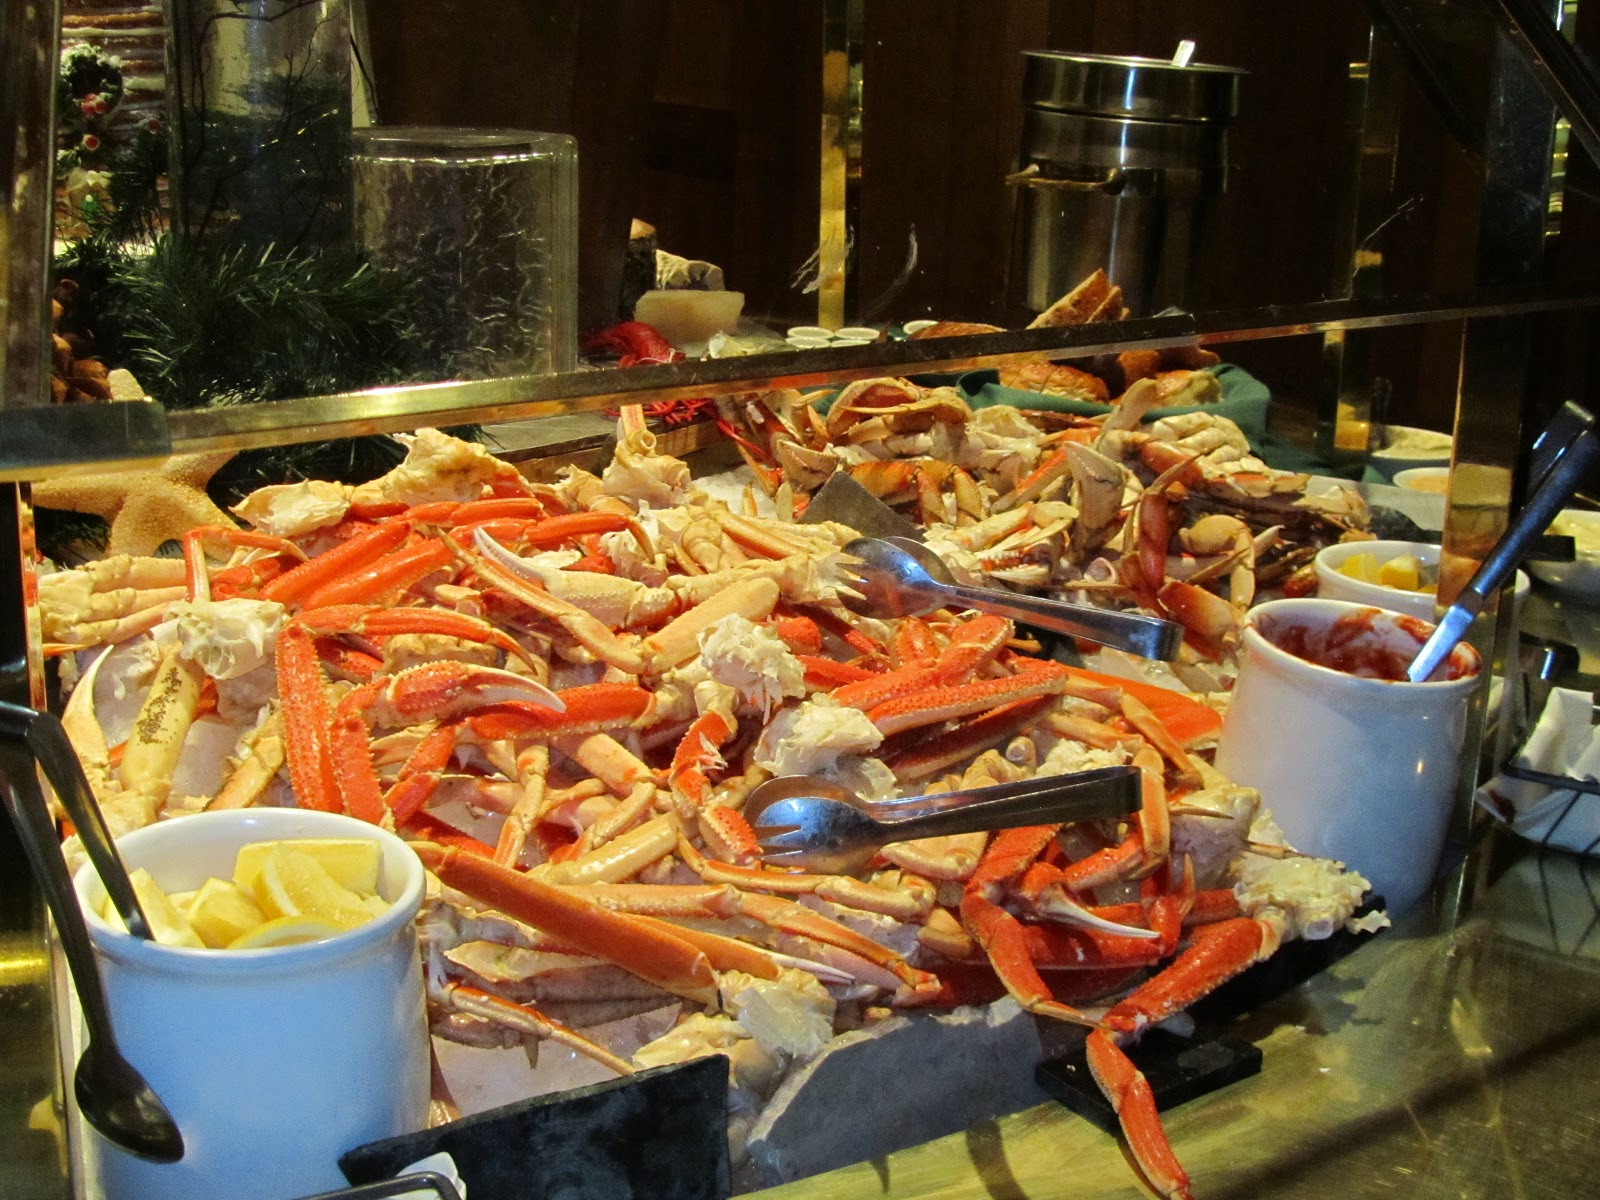 deer valley seafood buffet the charitable baker rh thecharitablebaker blogspot com deer valley seafood buffet prices deer valley seafood buffet park city ut